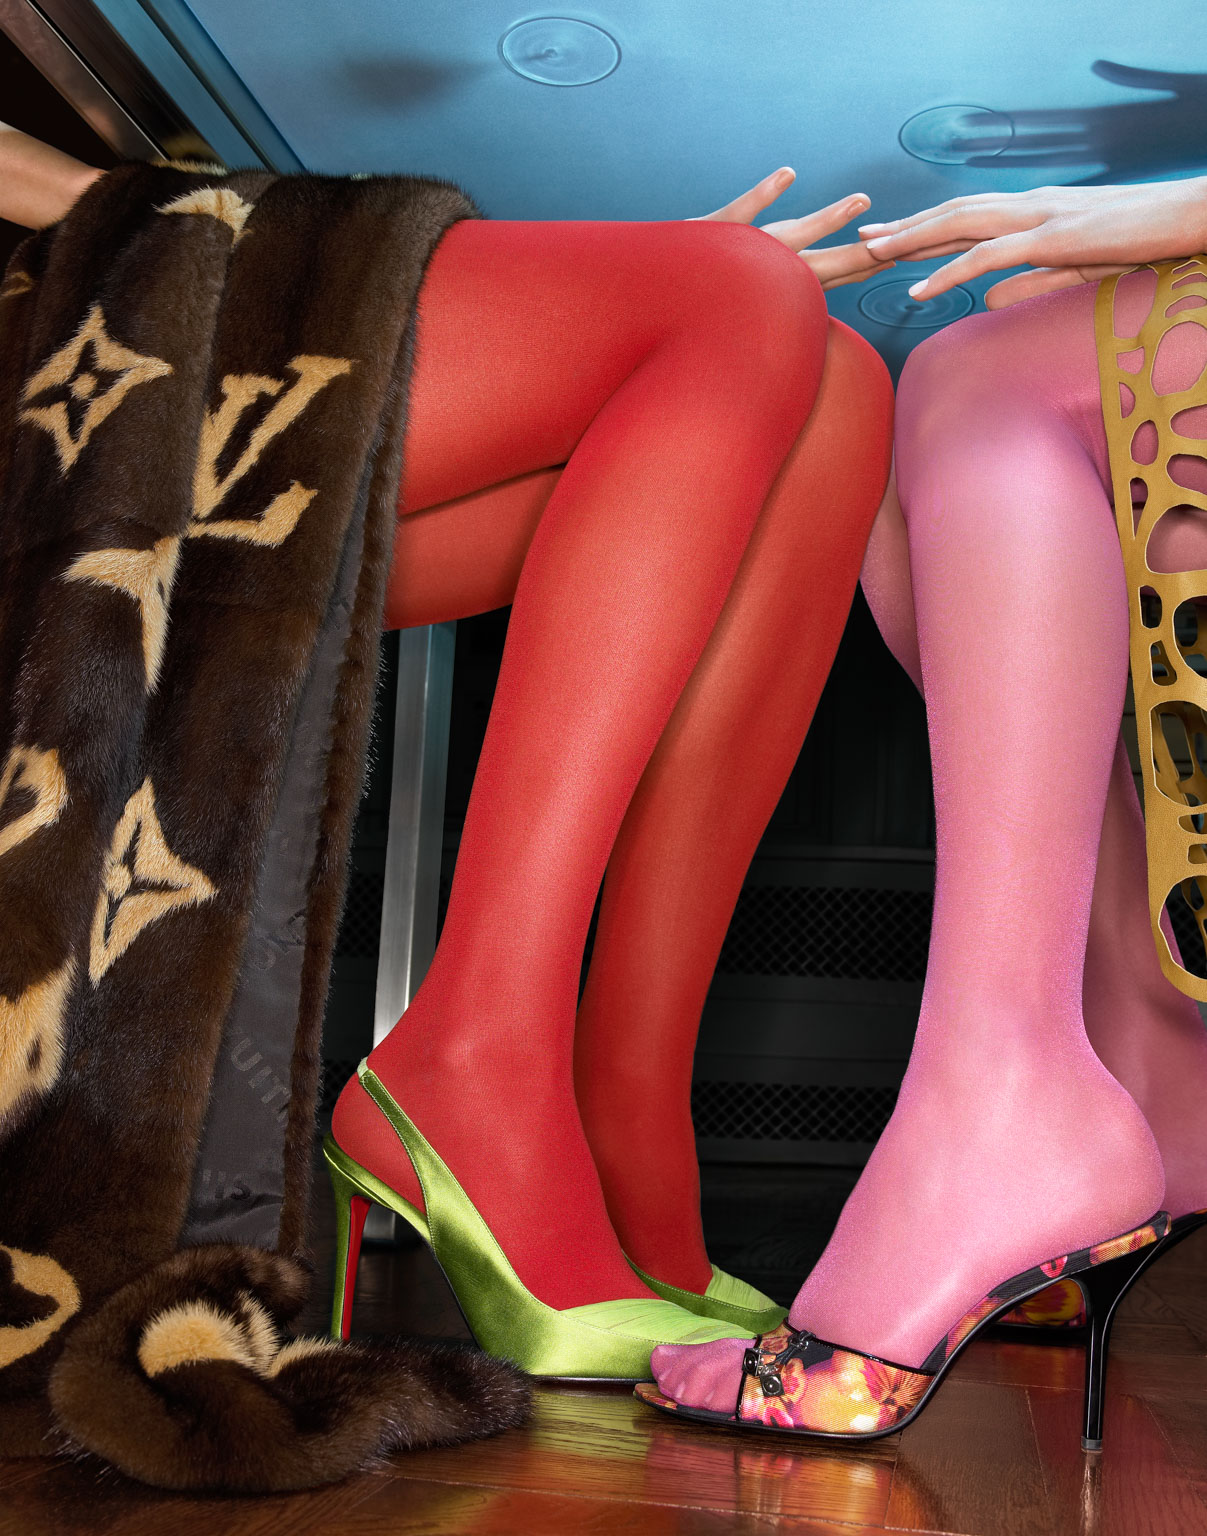 073_louis_red_tights_010f